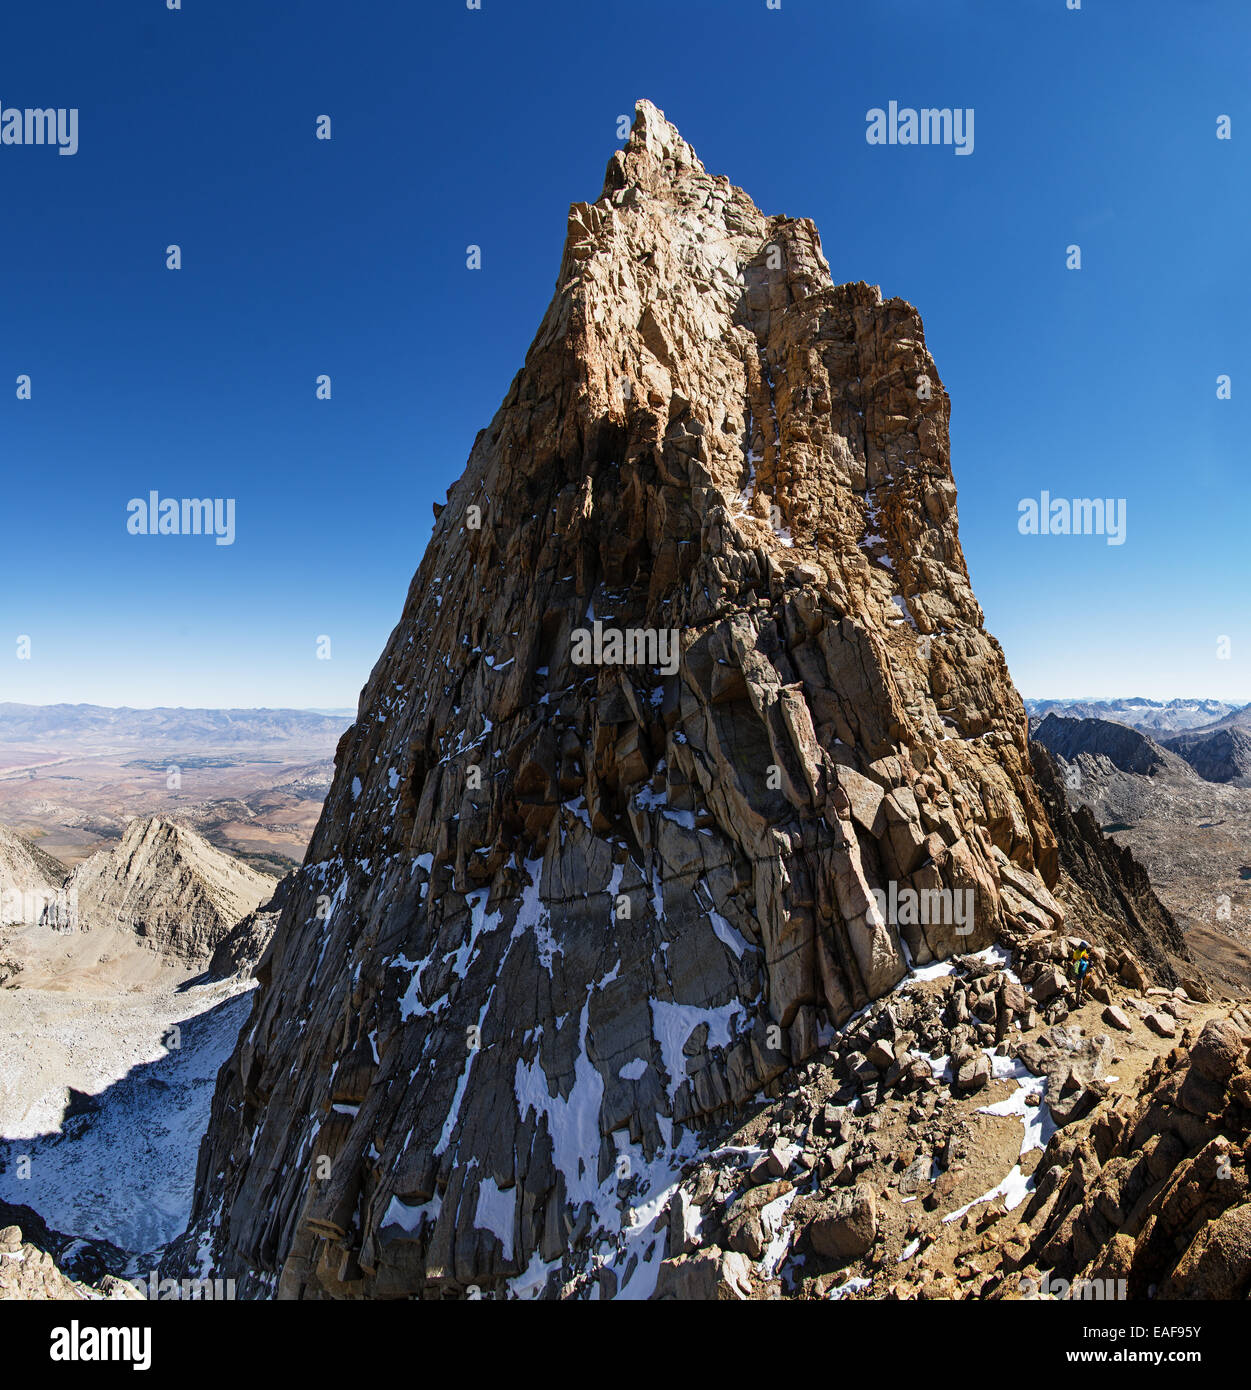 Mount Humphreys summit spire in the Sierra Nevada Mountains with two mountaineers at the base - Stock Image